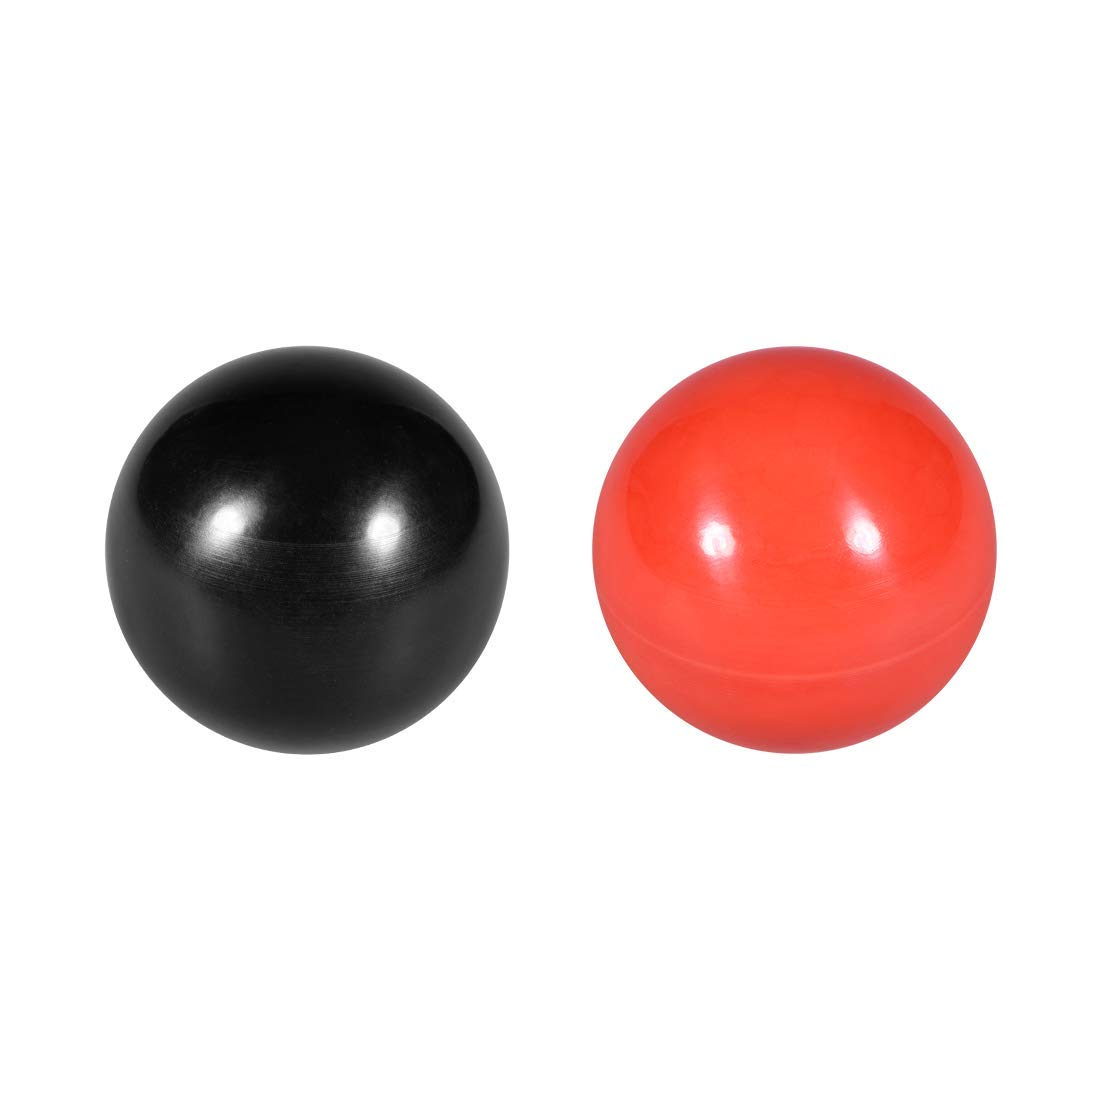 M12 thermostable Ball knob Female Thread Machine Handle Diameter 40 mm Smooth Edge Red 1 Pieces//Black 1 Pieces